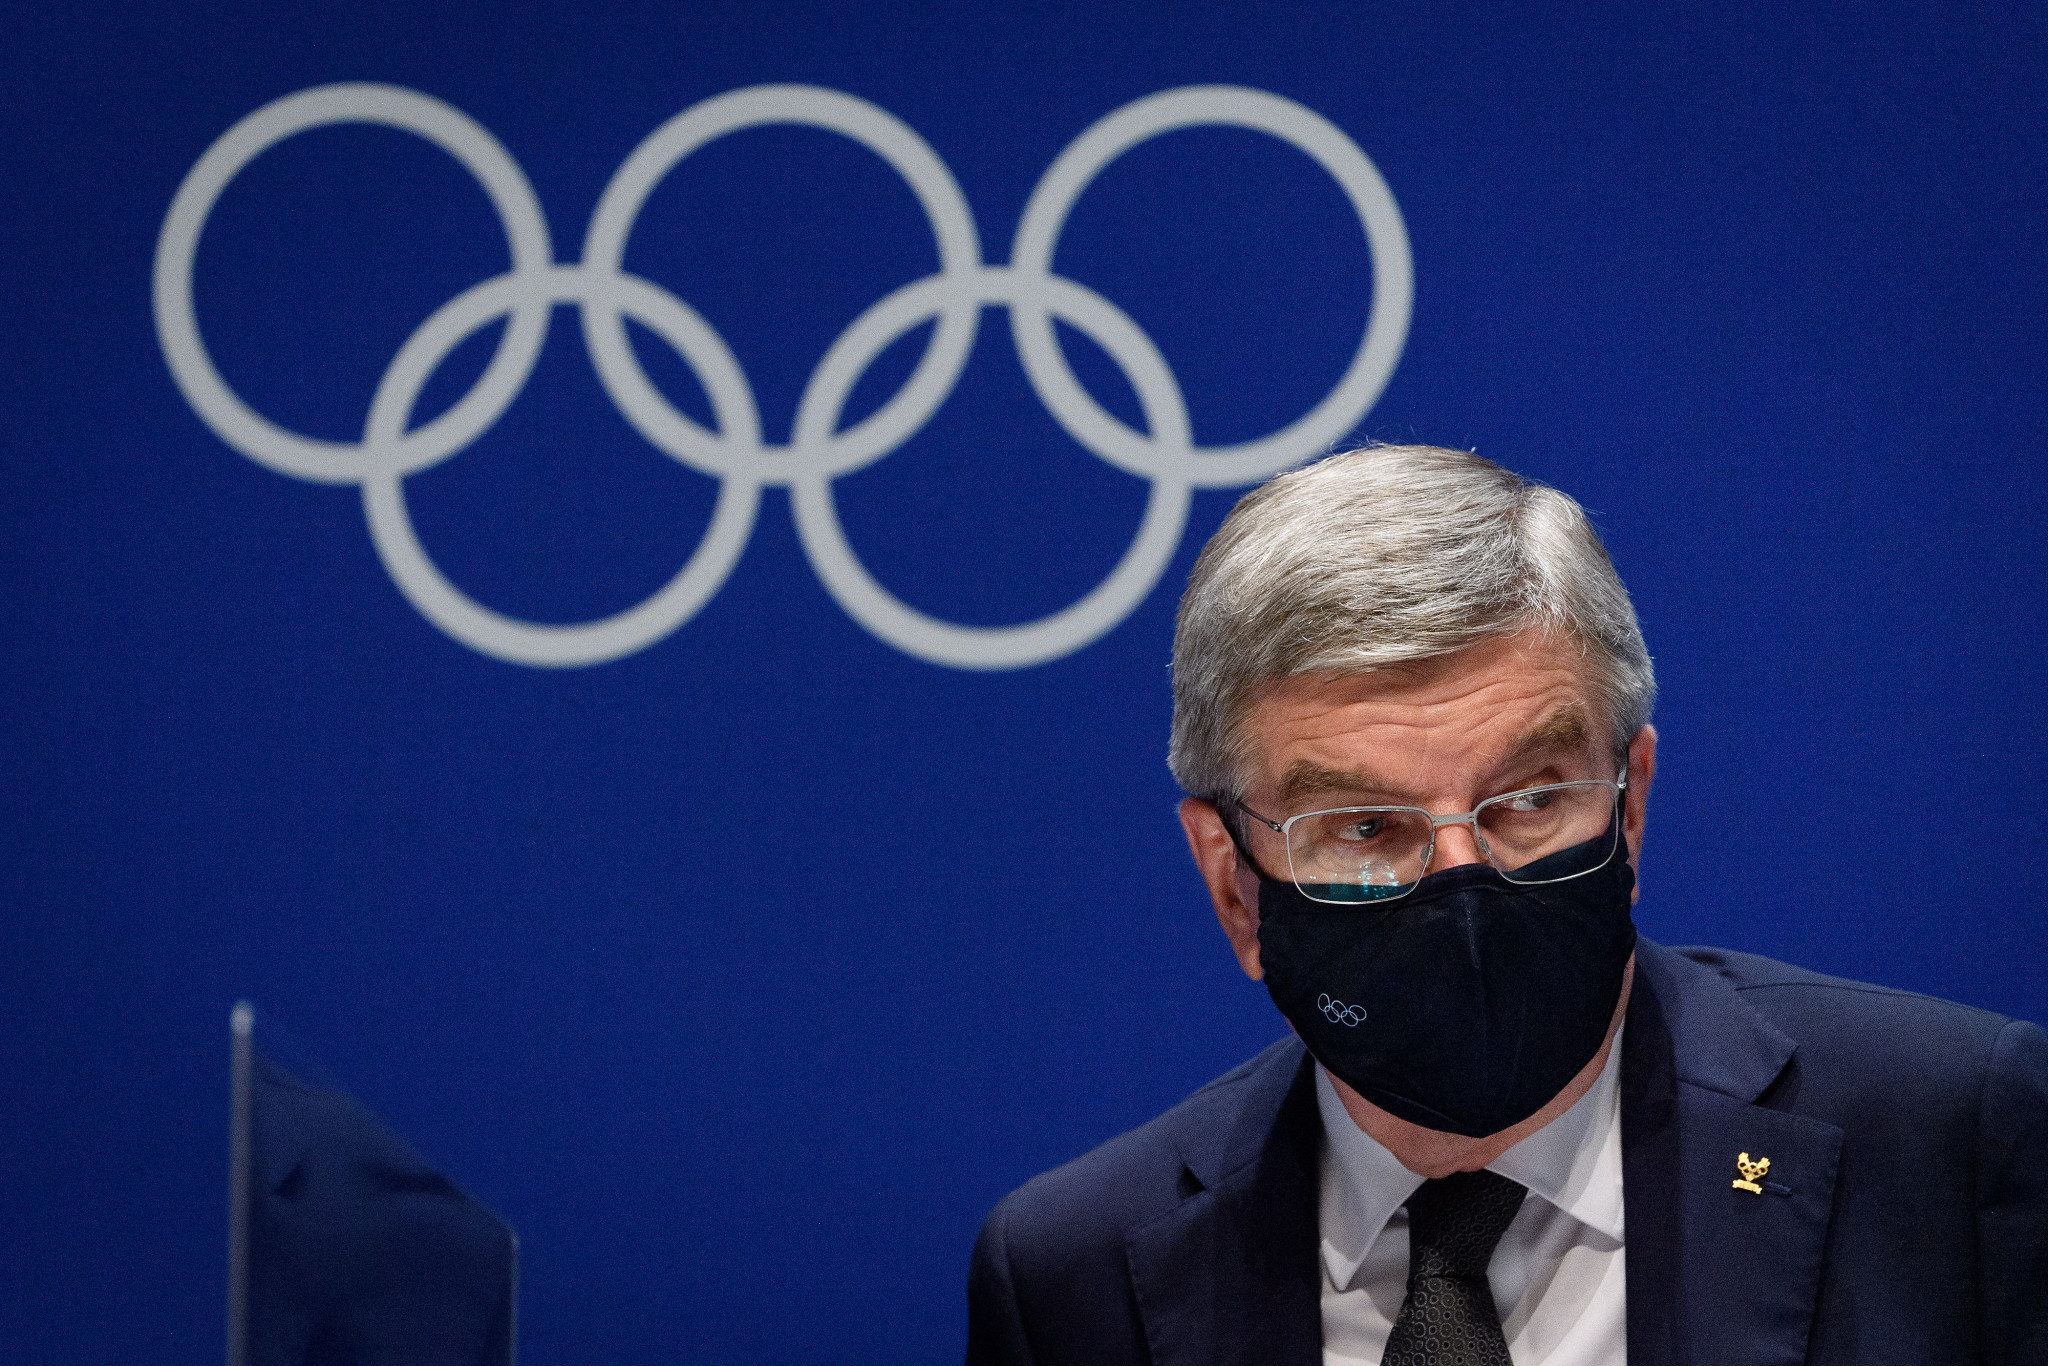 The IOC has moved its next Executive Board meeting to Greece ©Getty Images